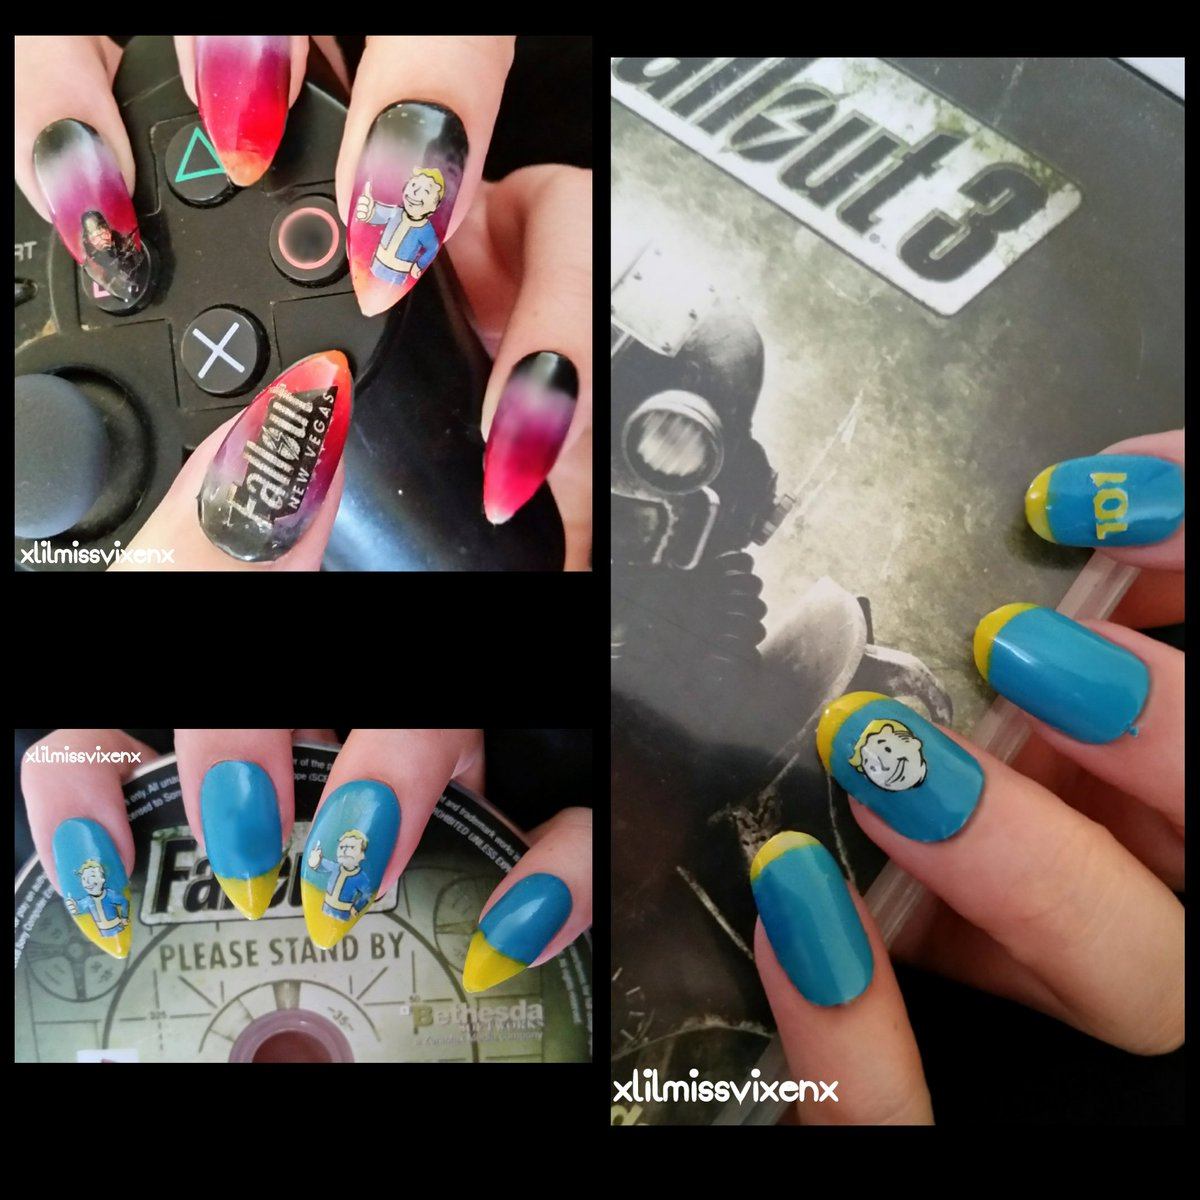 Vix On Twitter Just Some Fallout Reciation Courtesy Of One Nail Art Obsessed Who Is The Fallout76 Hype Train